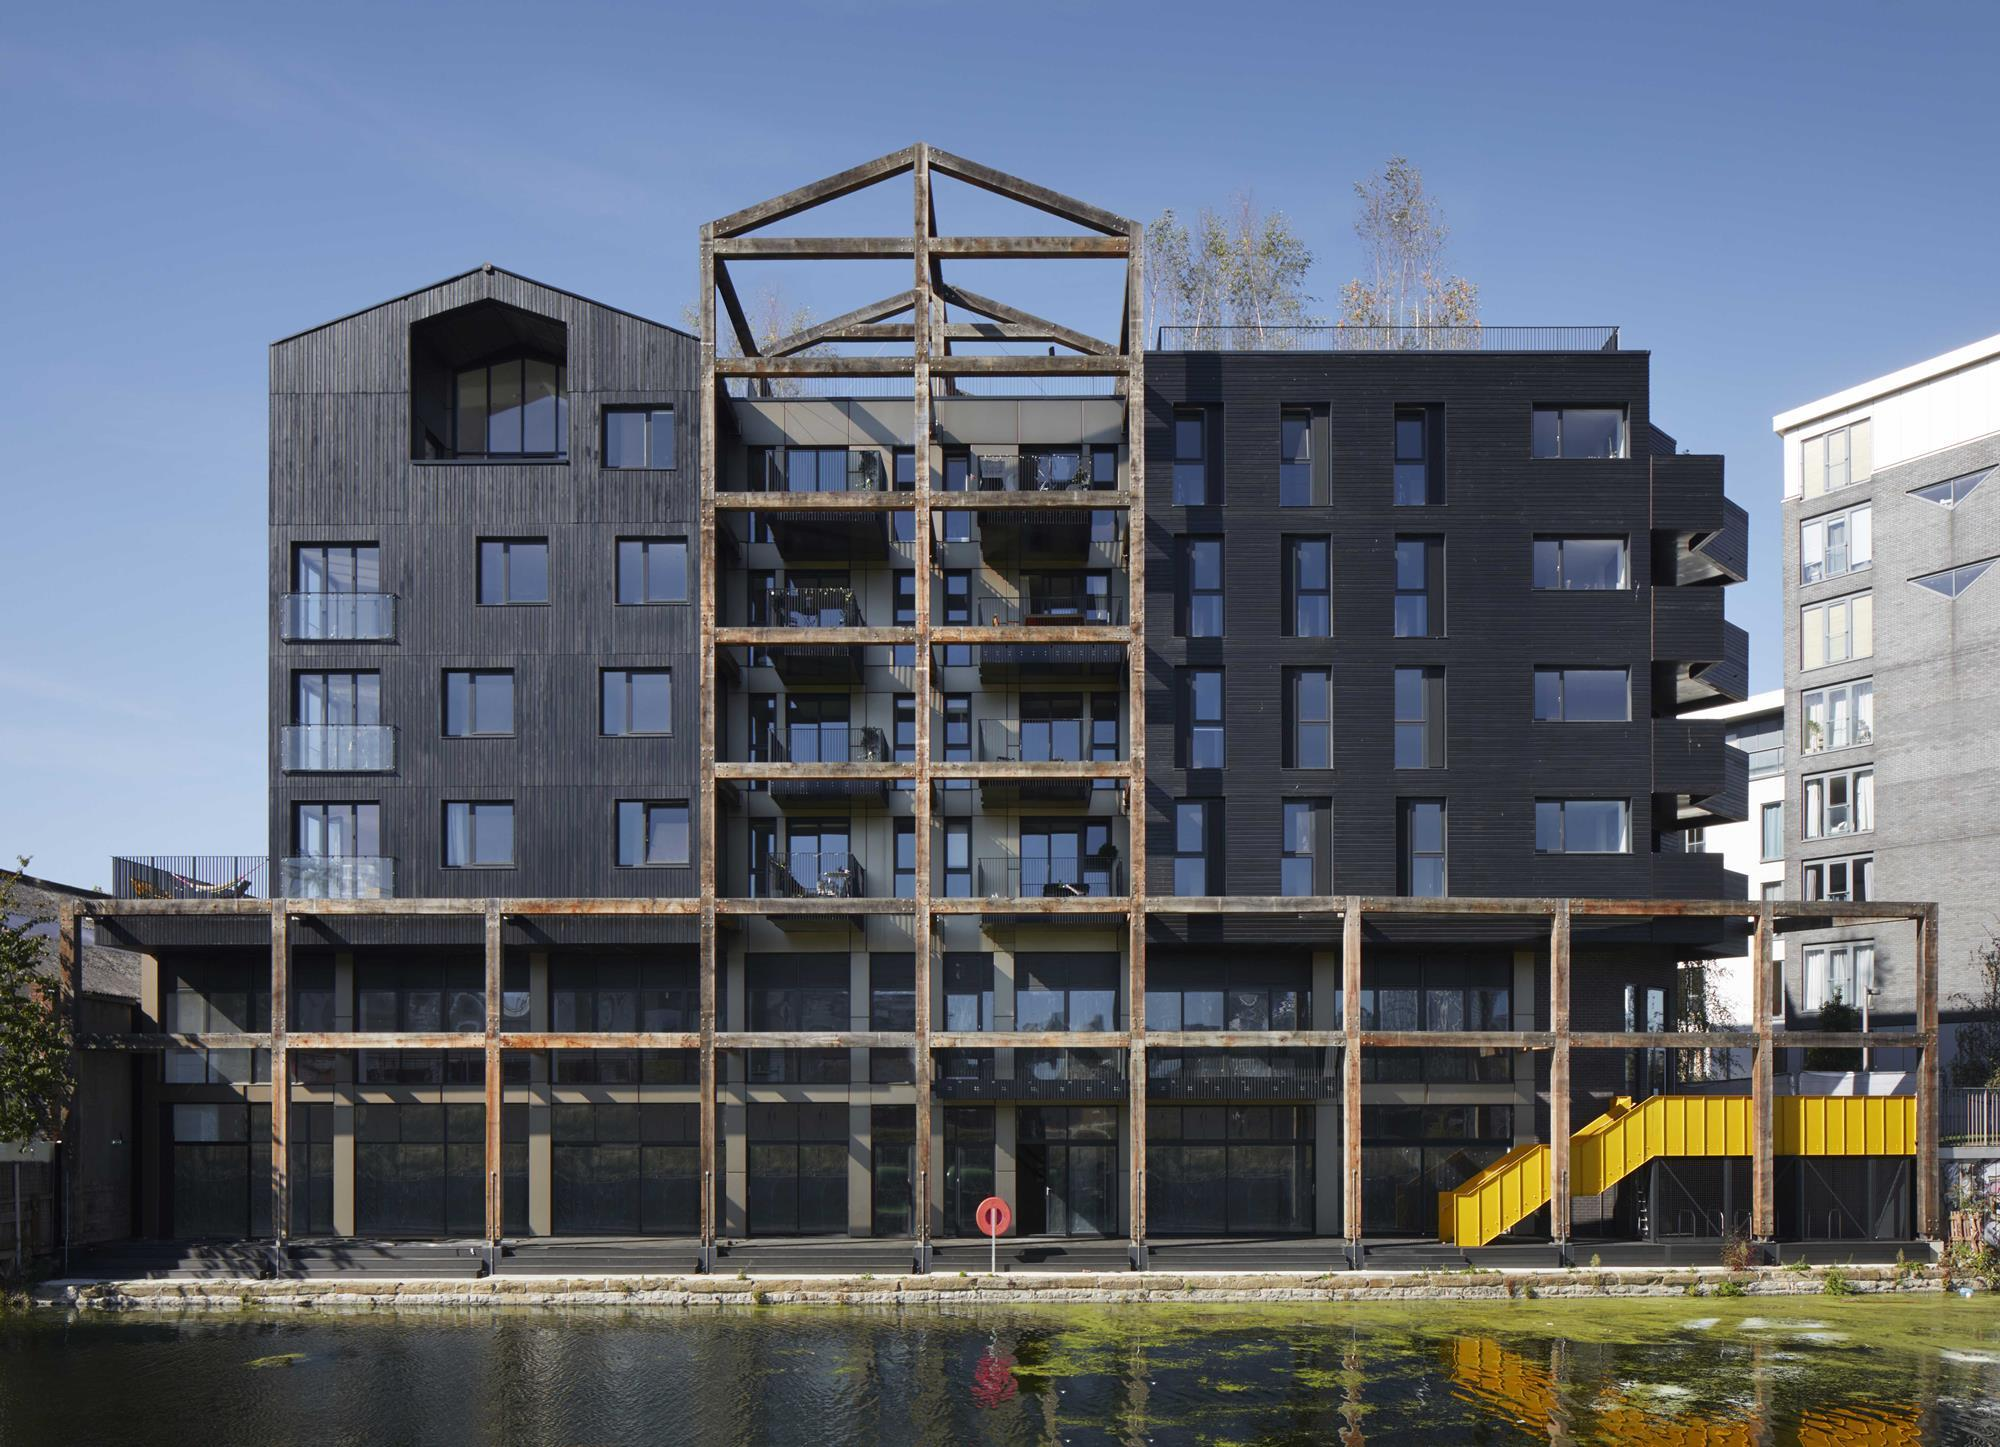 In pictures: Architect completes resi job job with views of Olympic Park